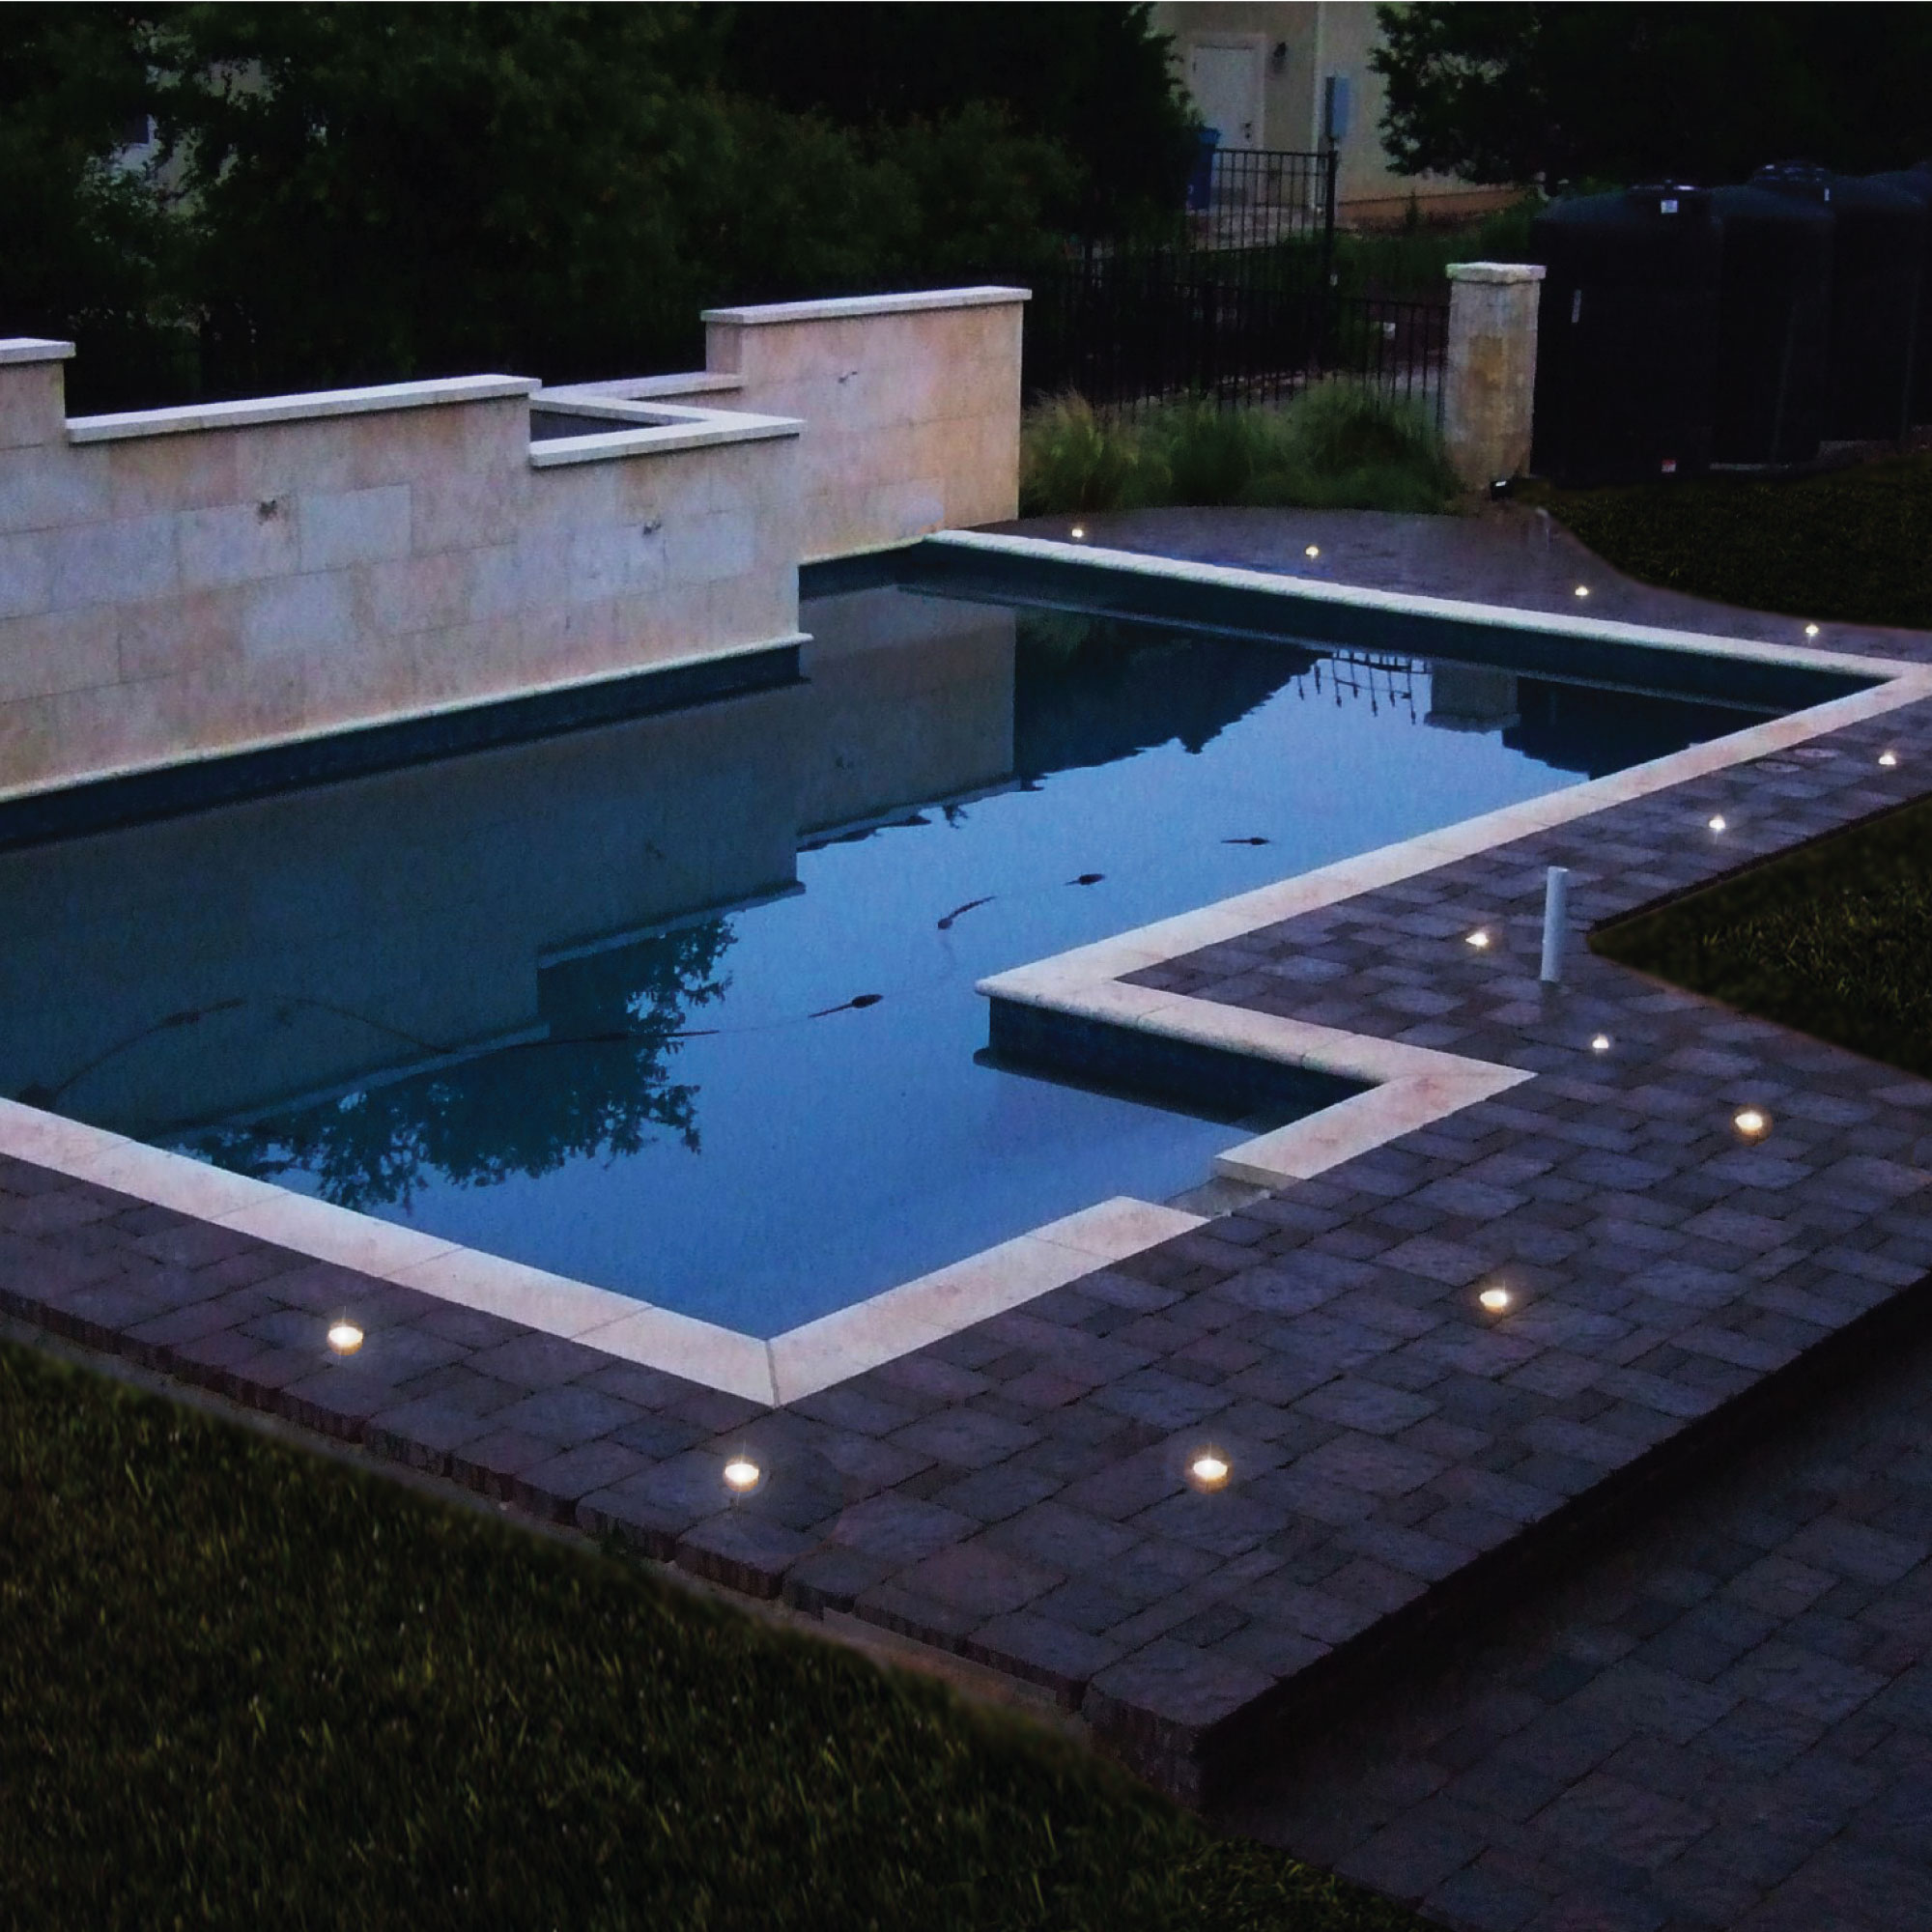 Ground cap solar light 6 lights per box life saver pool fence life saver pool fence mozeypictures Image collections